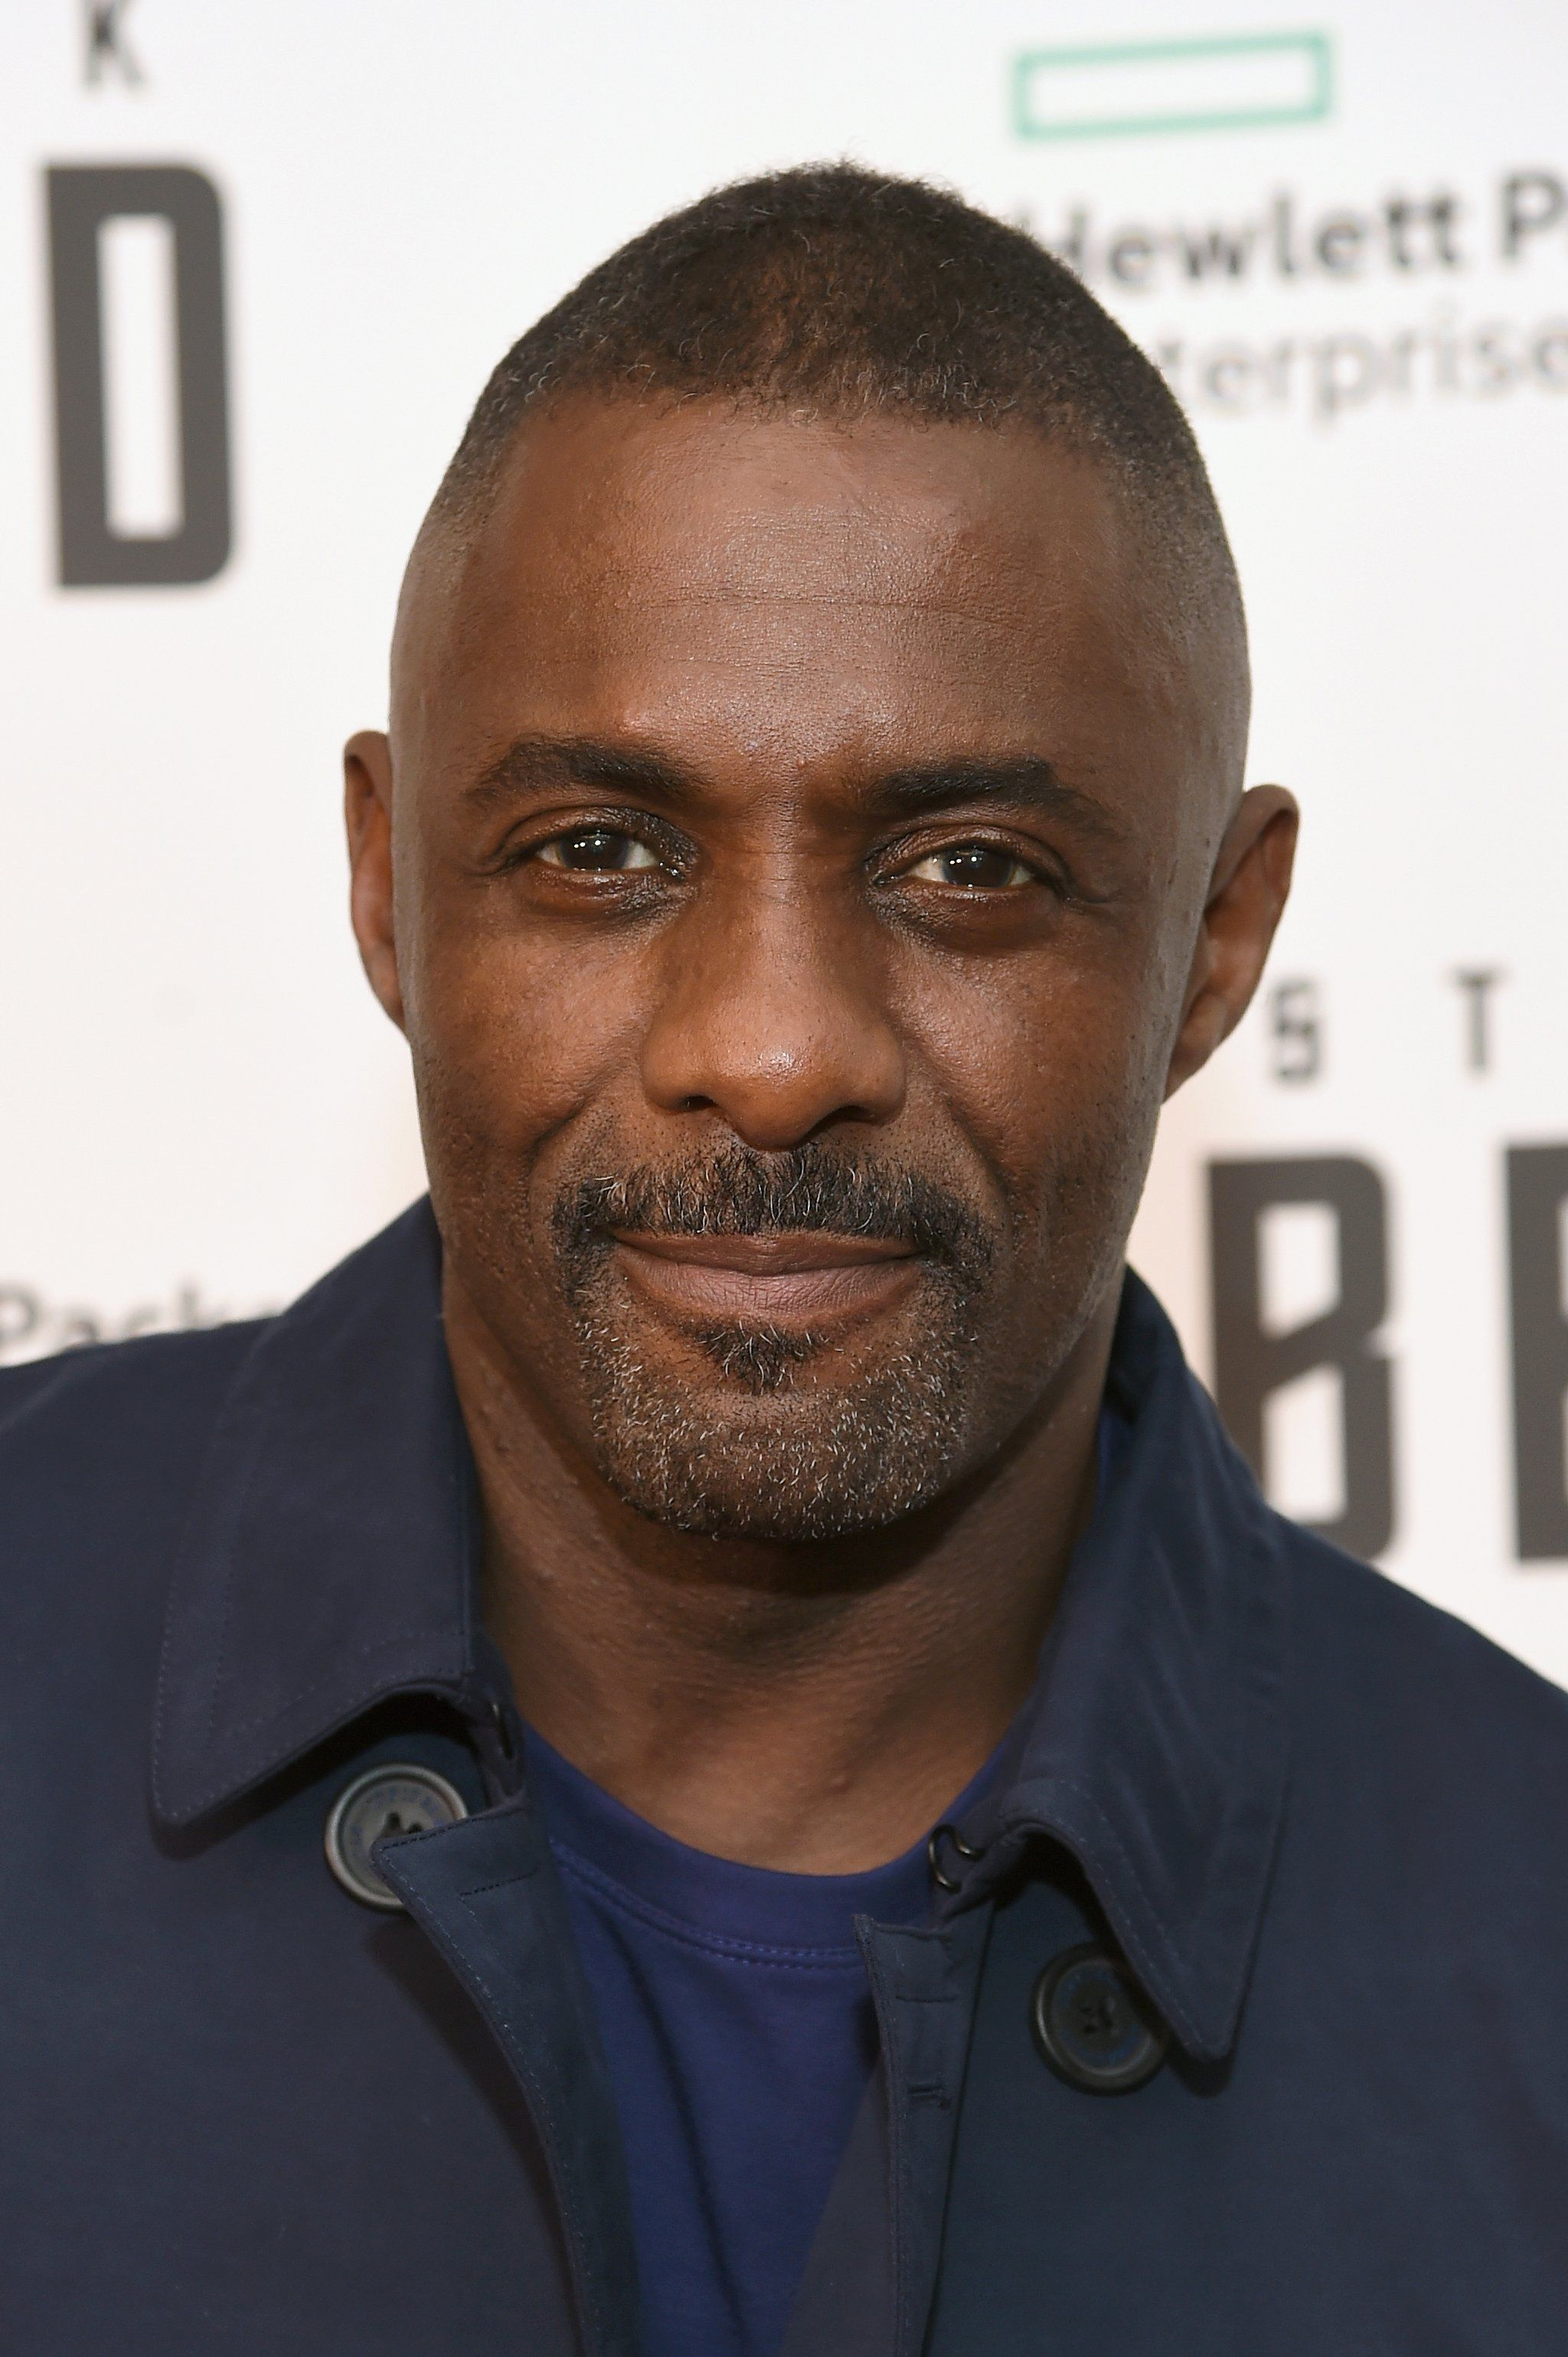 25 Times Idris Elba Looked Into Your Eyes And Penetrated Your Soul